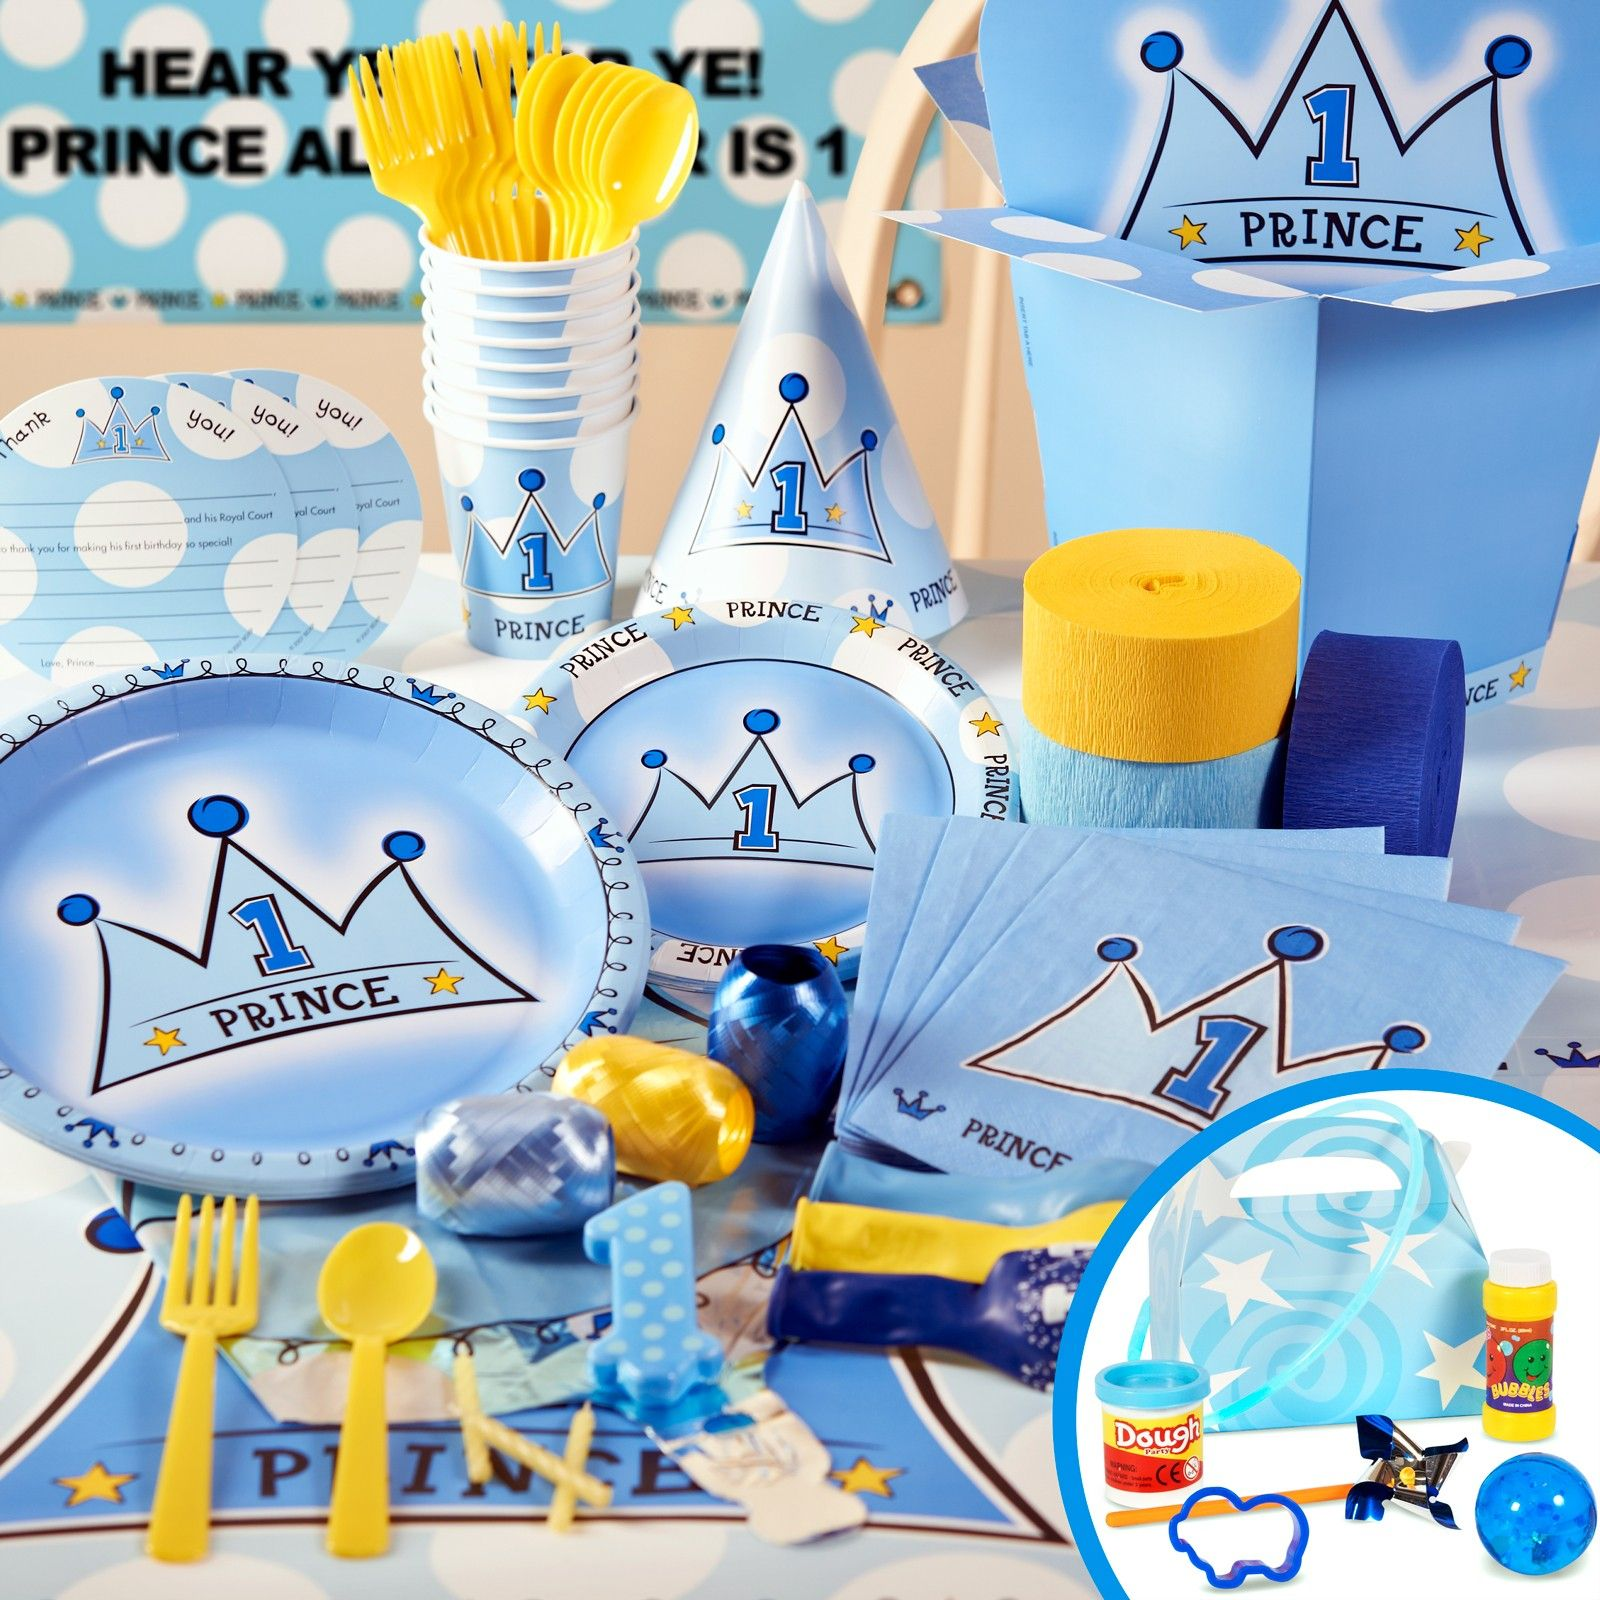 Prince Charming Party Supplies